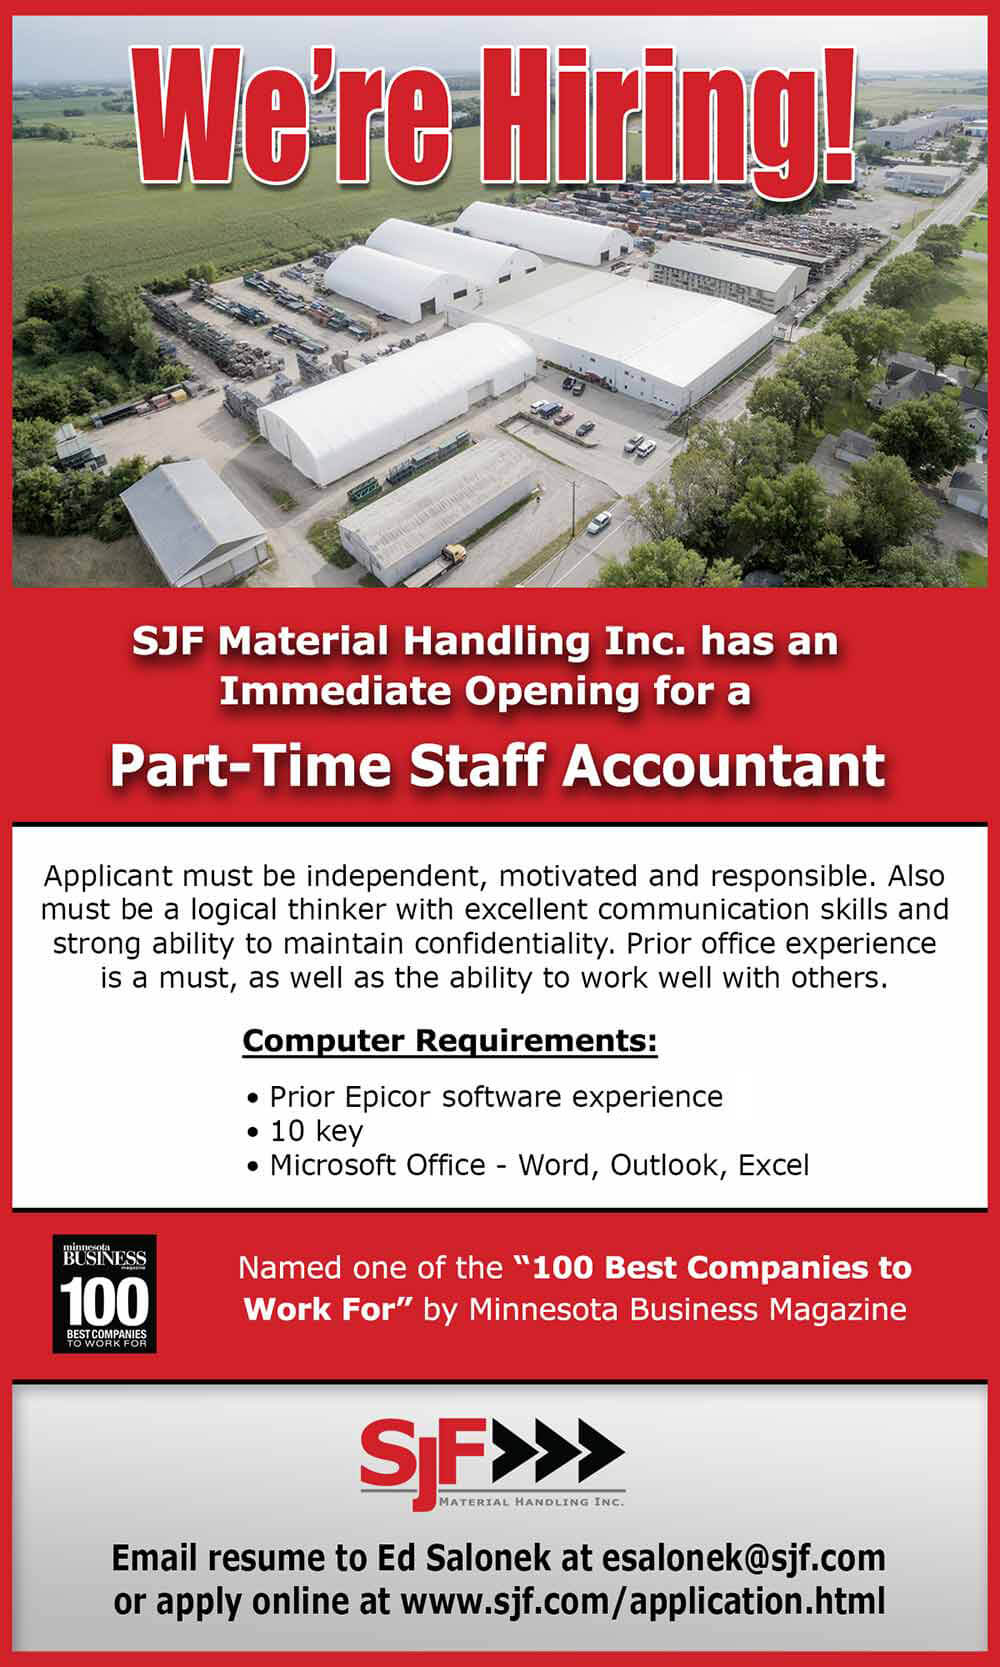 SJF is hiring a part-time staff accountant